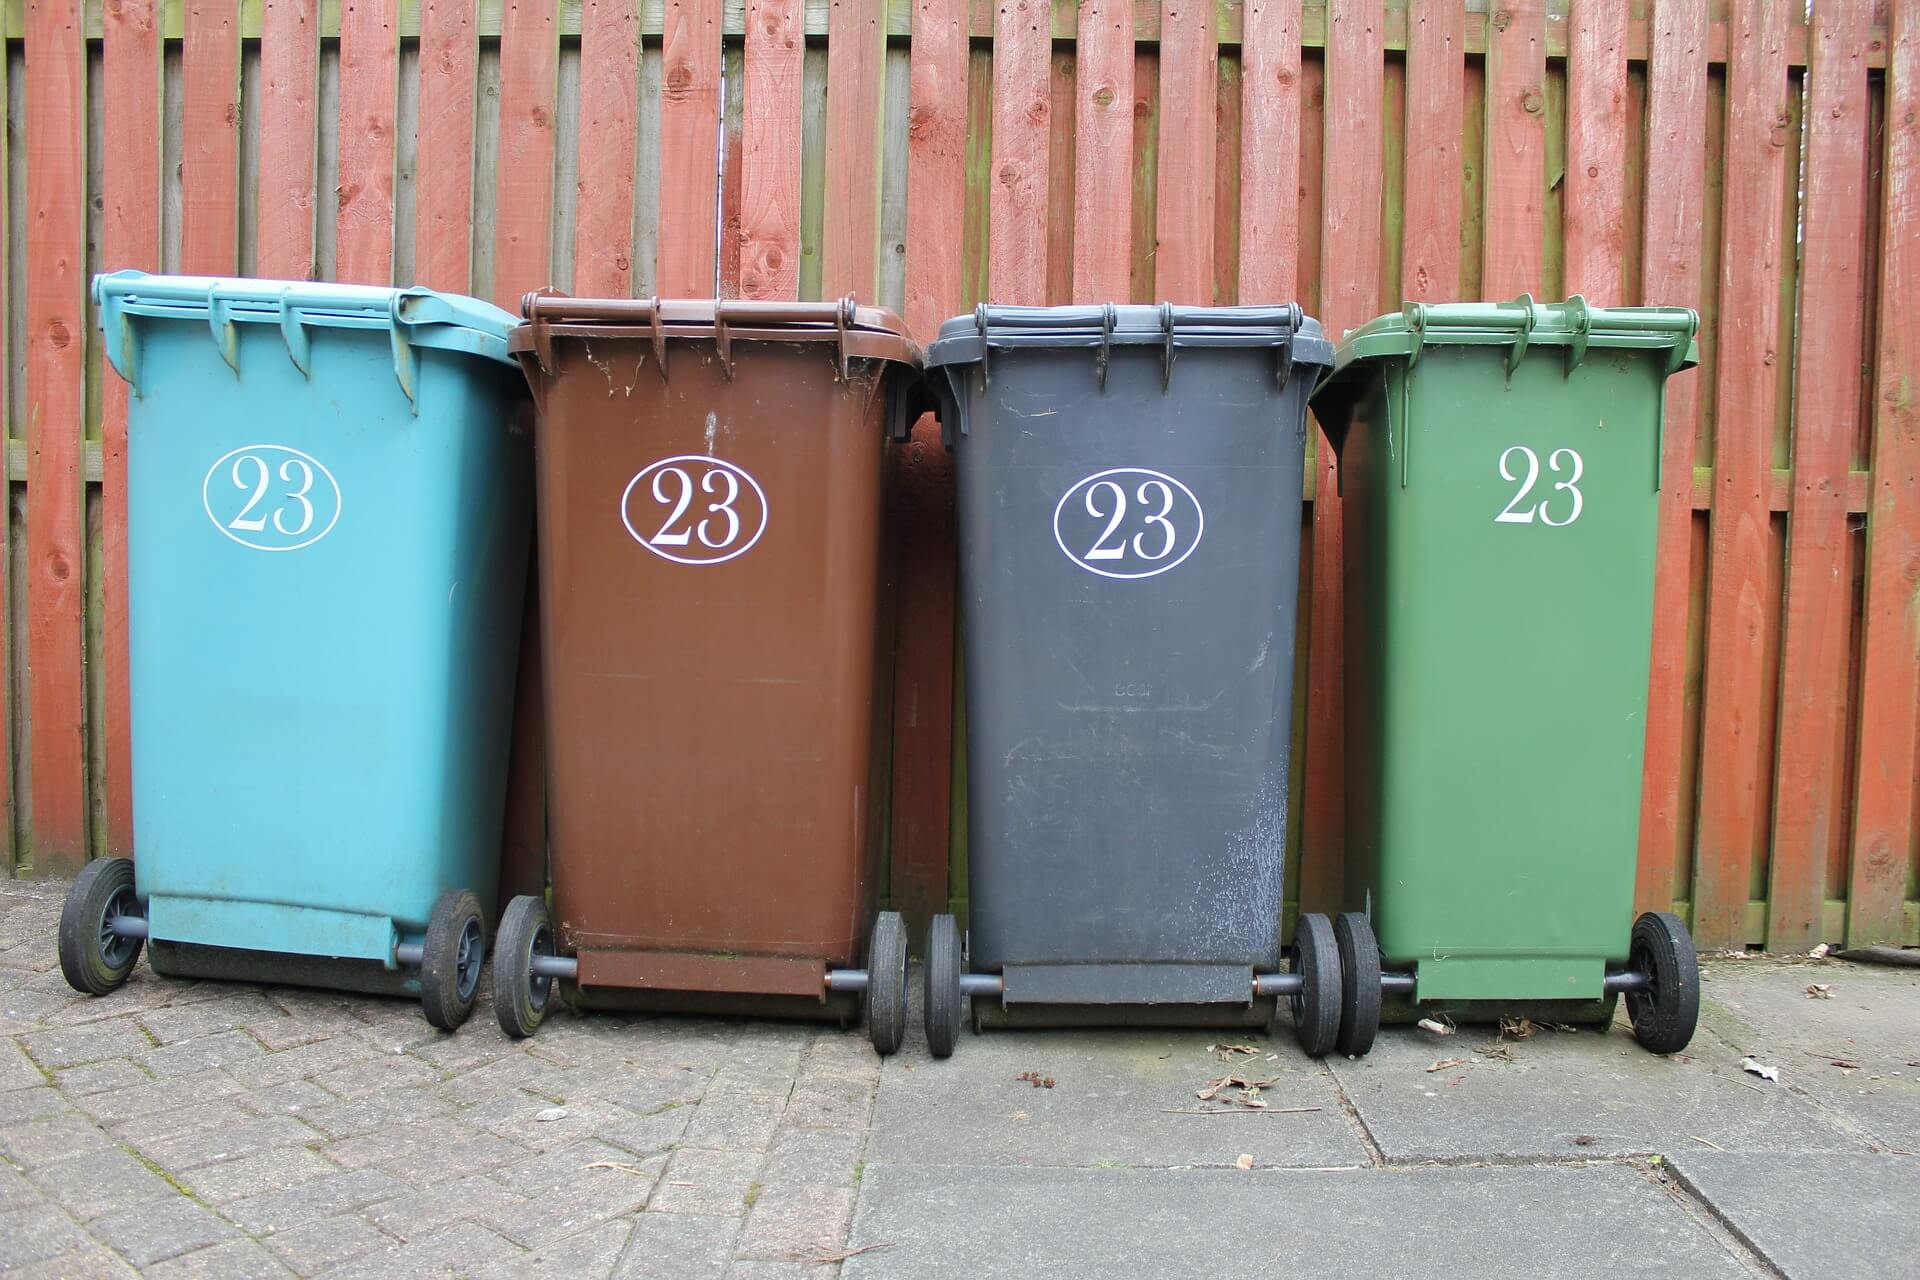 Four different colored trash cans with the number 23 on each of them.